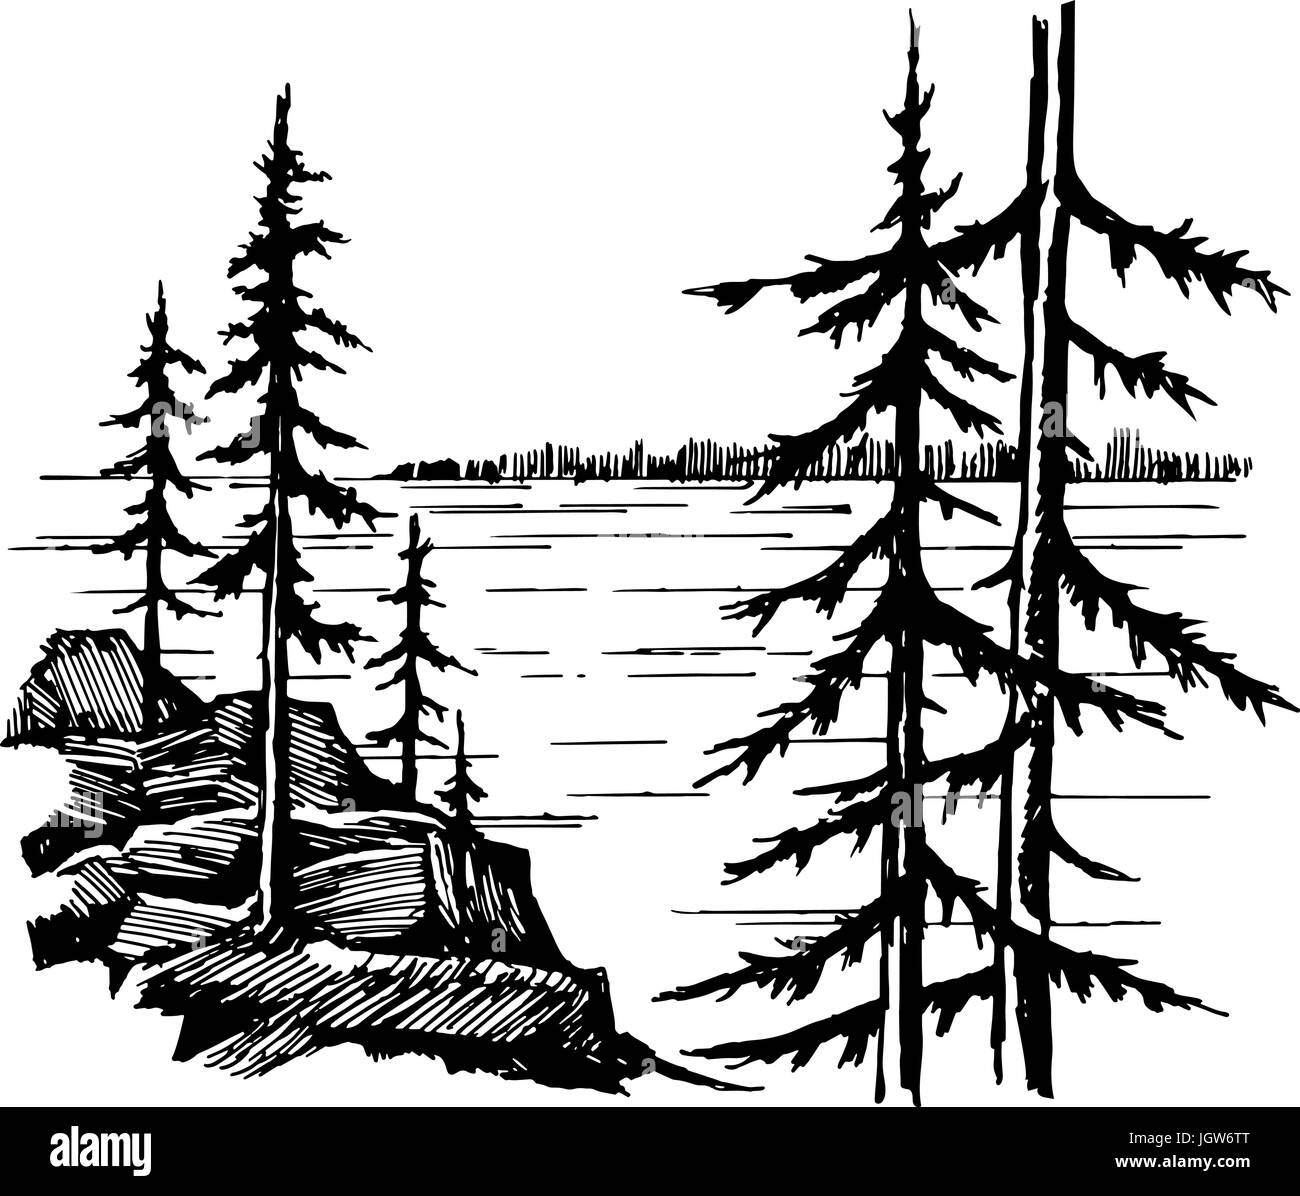 Landscape with lake and spruce fores - Stock Vector